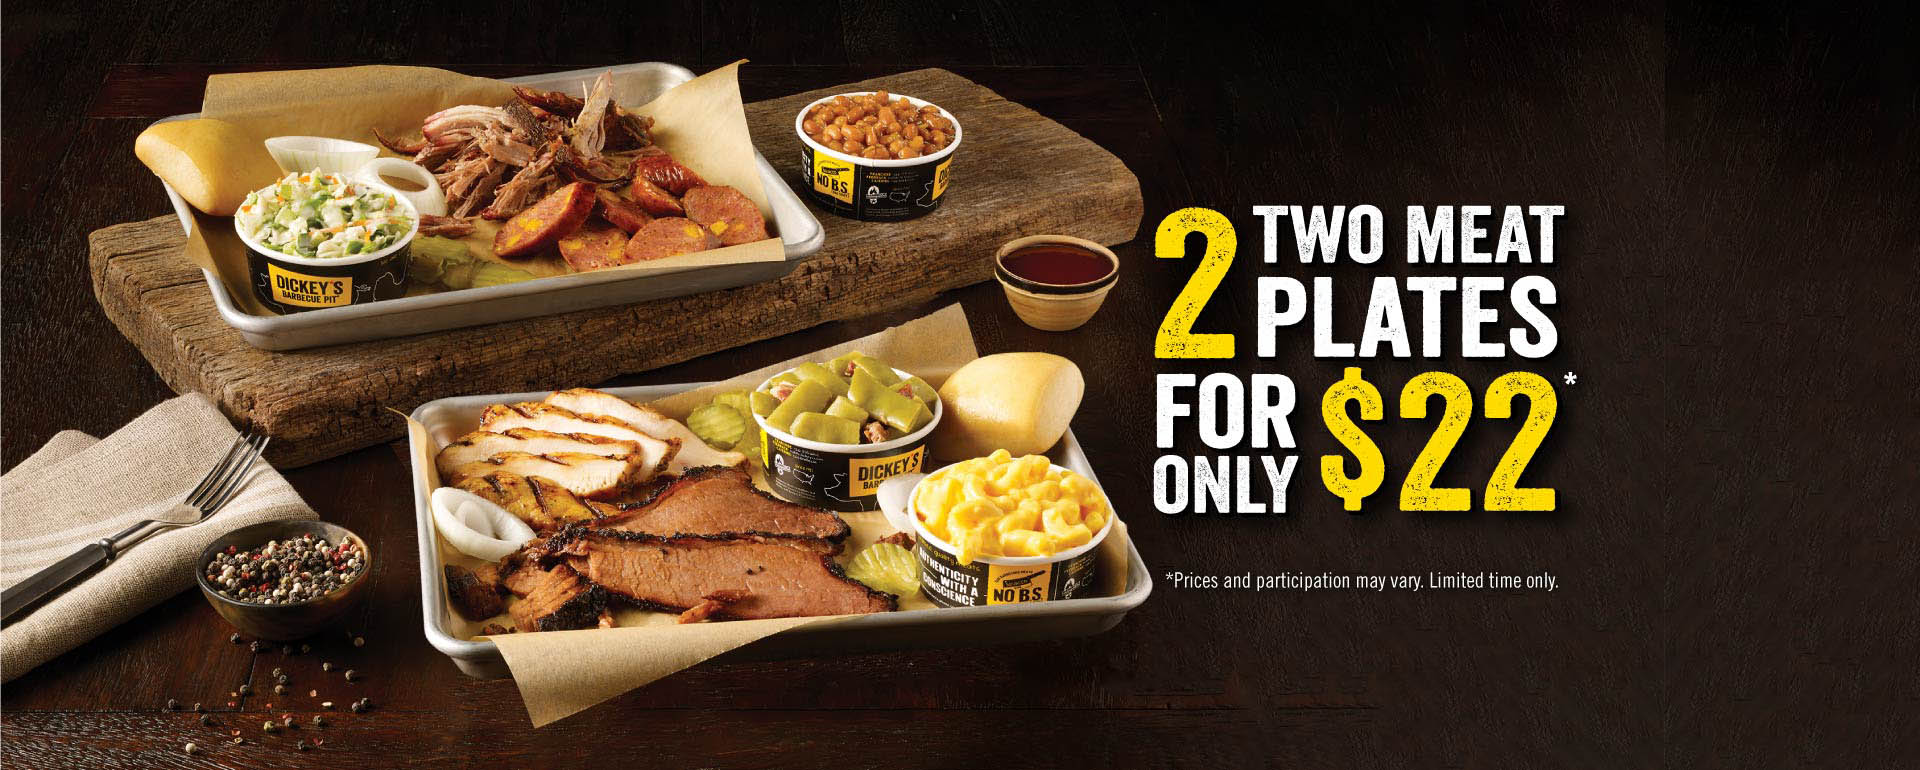 2 Two Meat Plates for $22